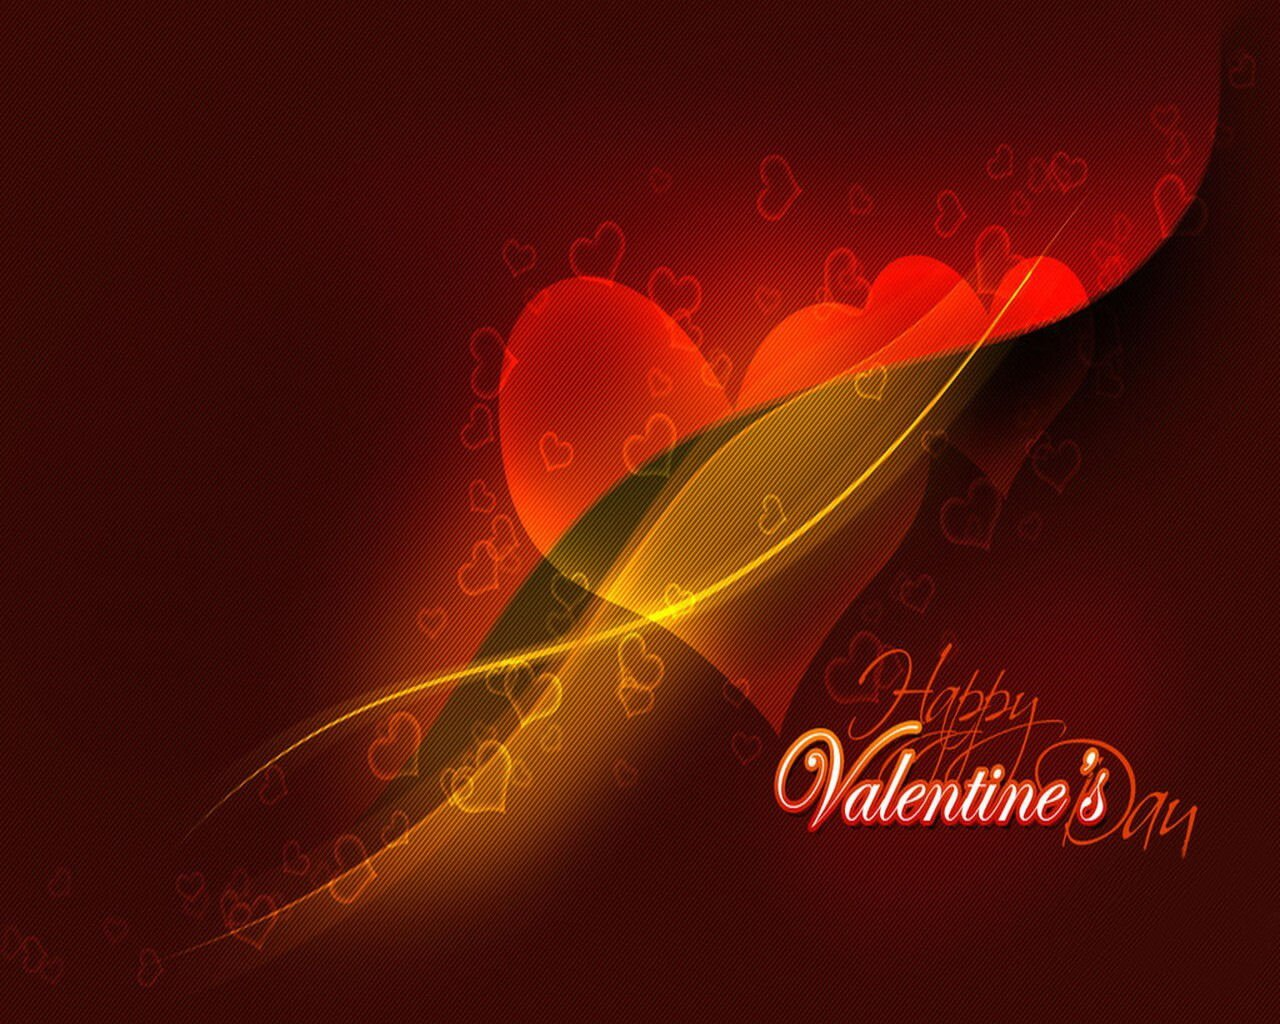 Download Valentines Day Wallpaper 1280x1024